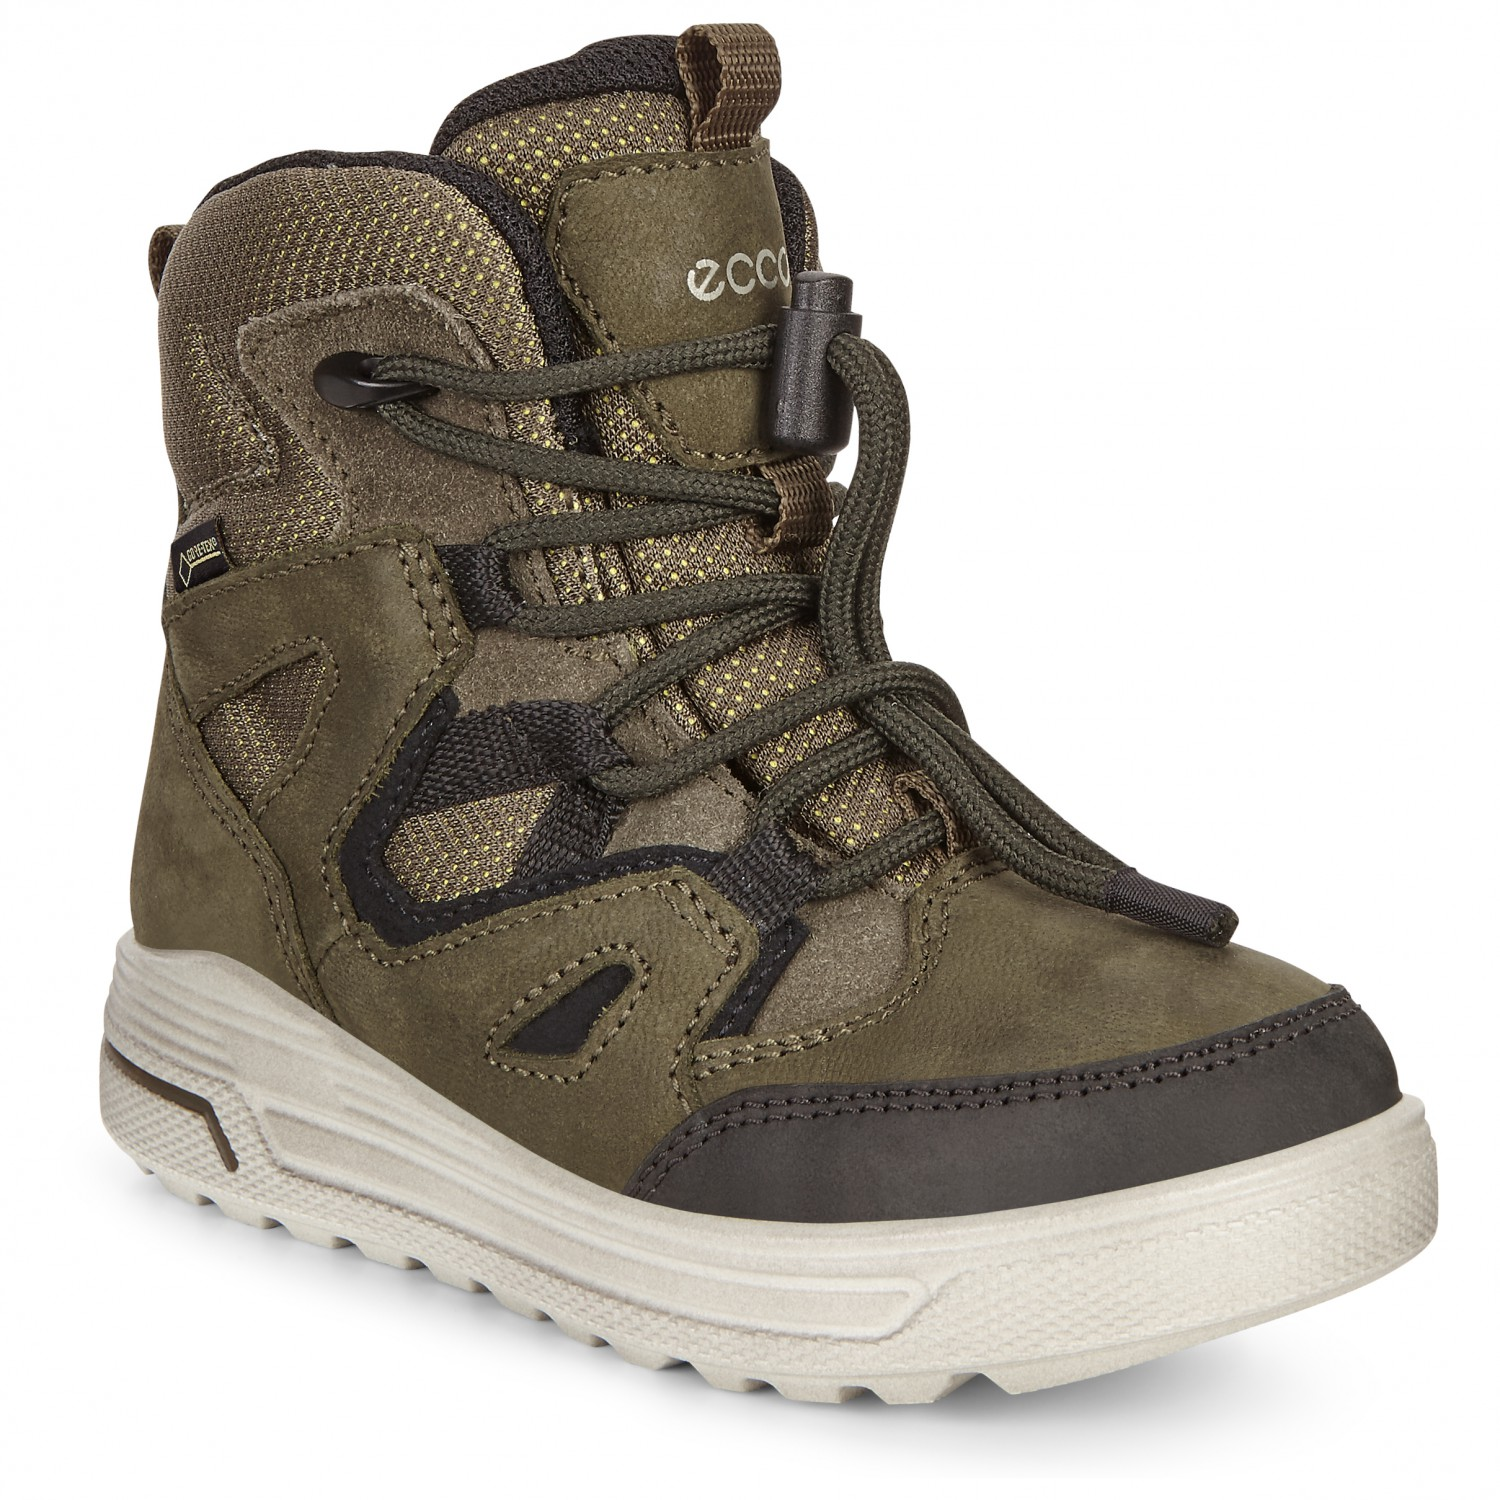 8b523ee47844a Ecco Urban Snowboarder GTX Lace - Winter Boots Kids